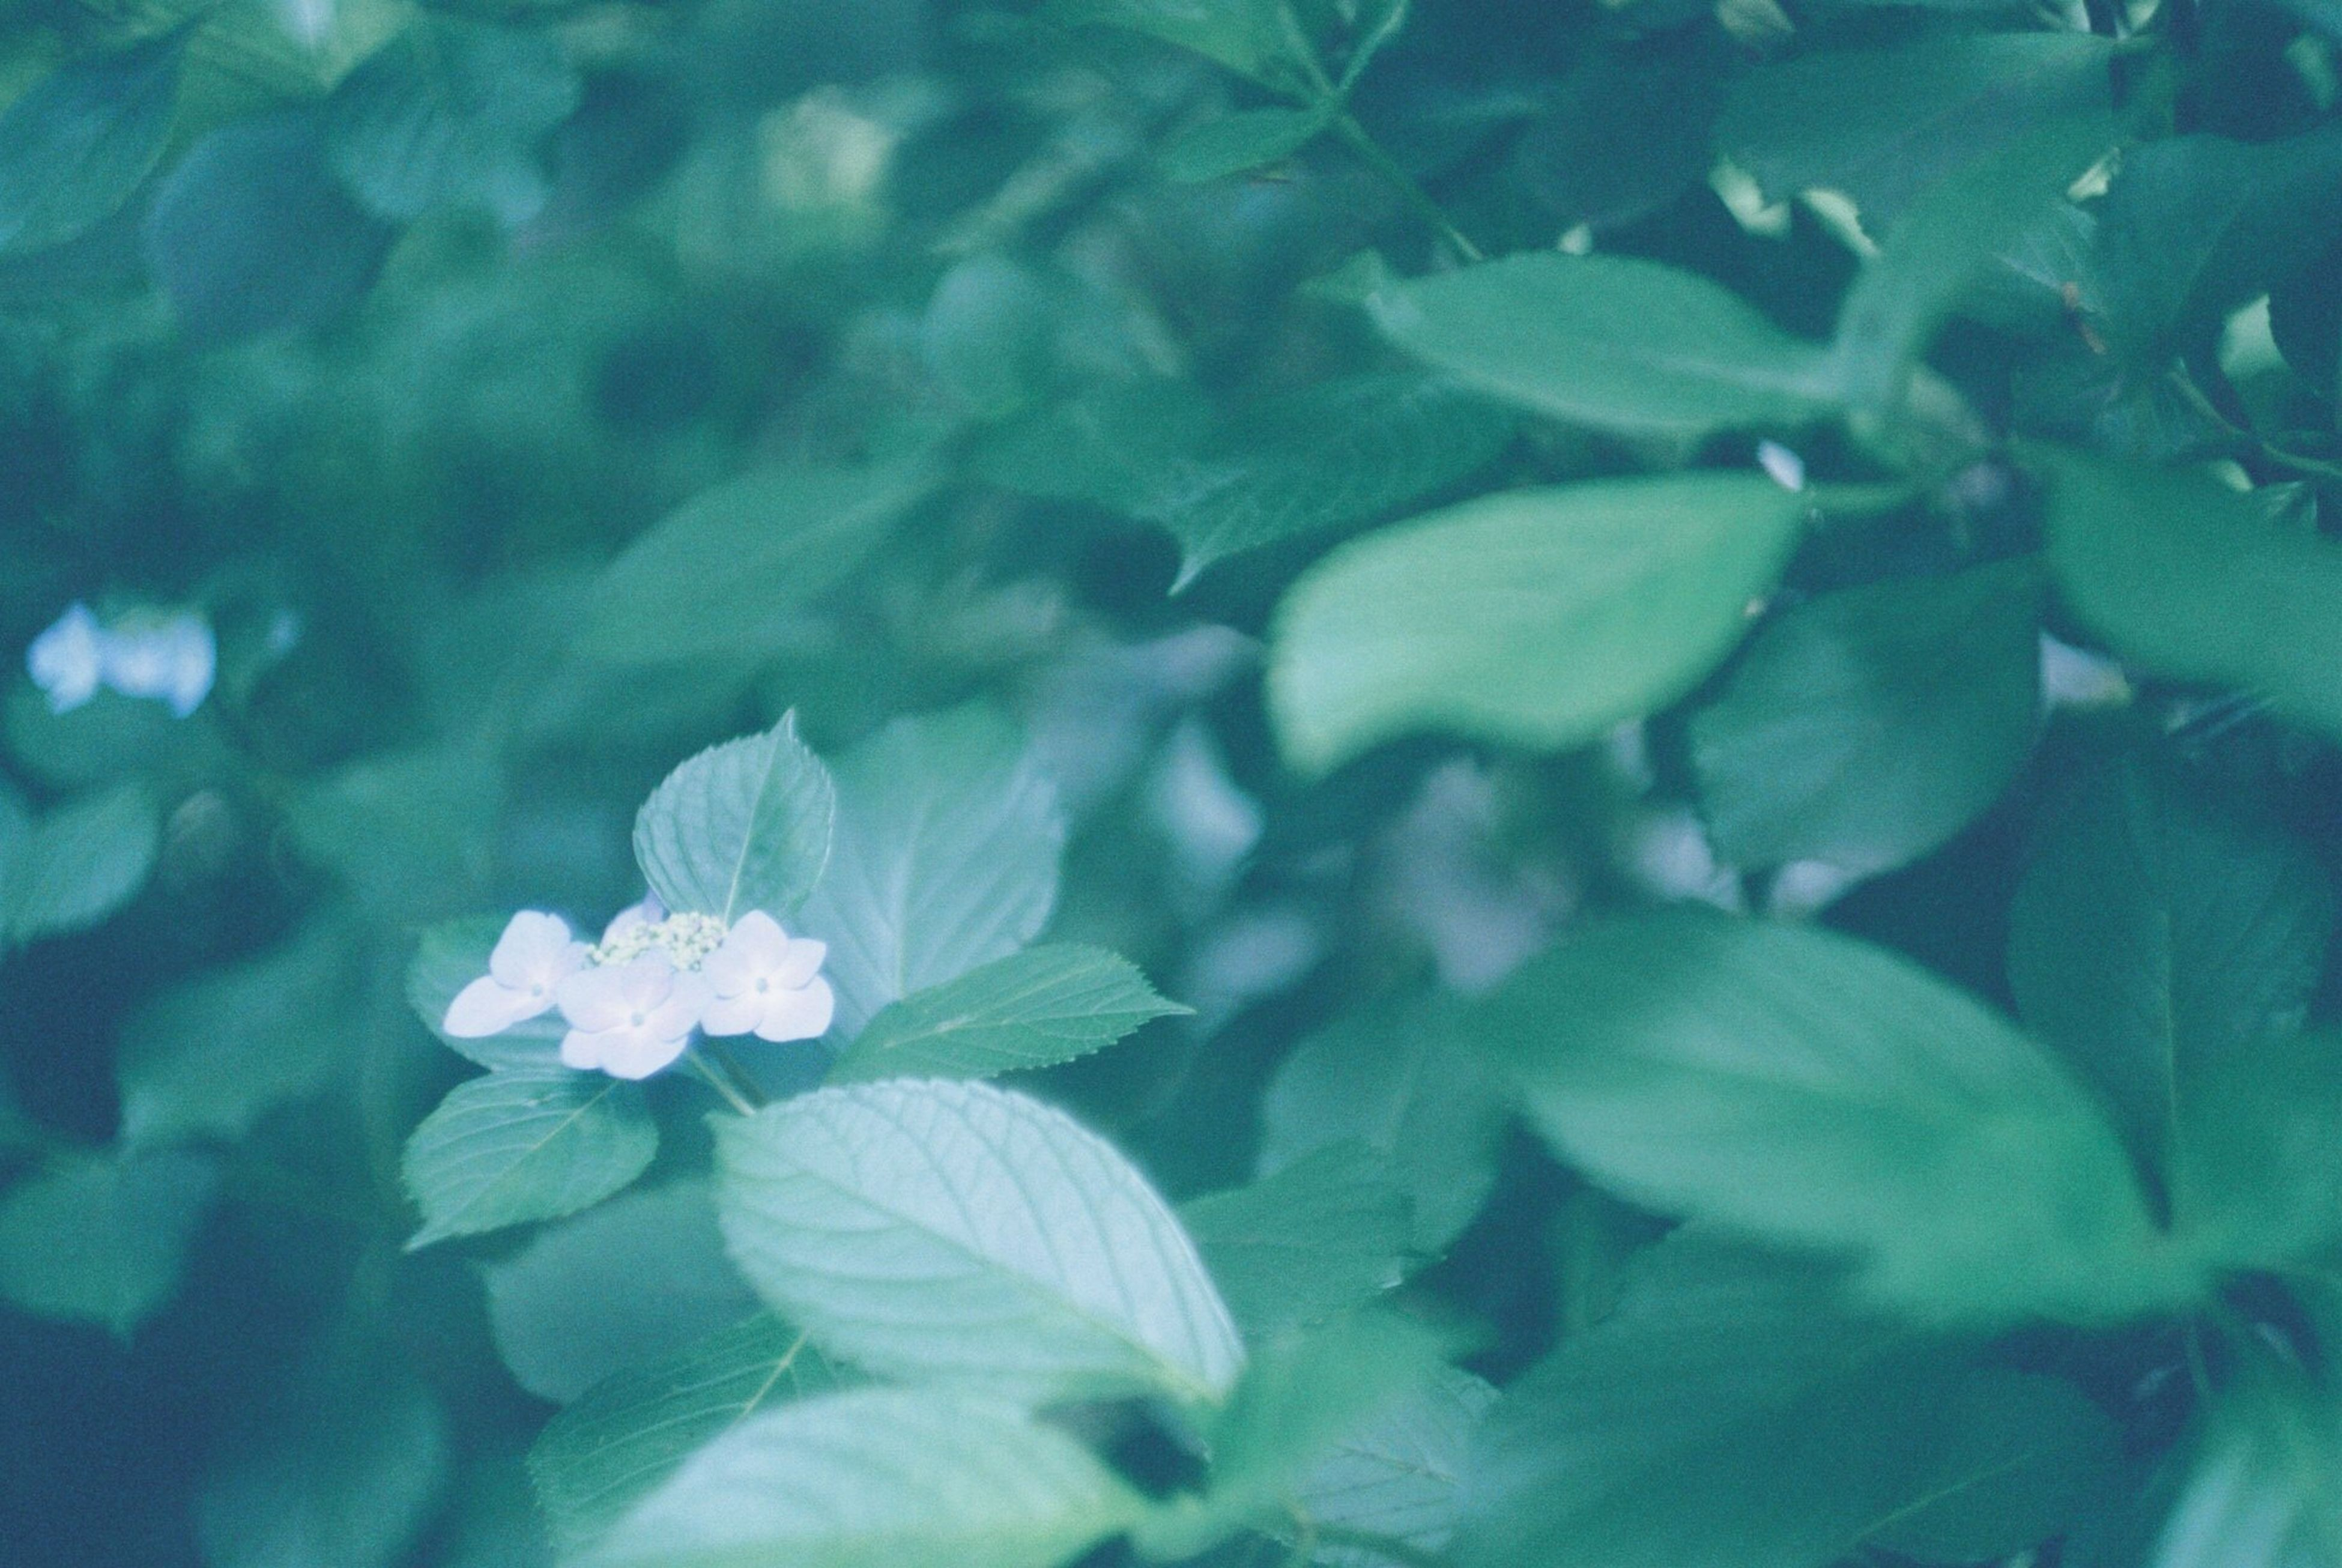 growth, flower, freshness, fragility, beauty in nature, leaf, nature, plant, close-up, petal, green color, blooming, flower head, focus on foreground, blue, outdoors, day, no people, tranquility, in bloom, selective focus, growing, botany, blossom, green, natural pattern, softness, backgrounds